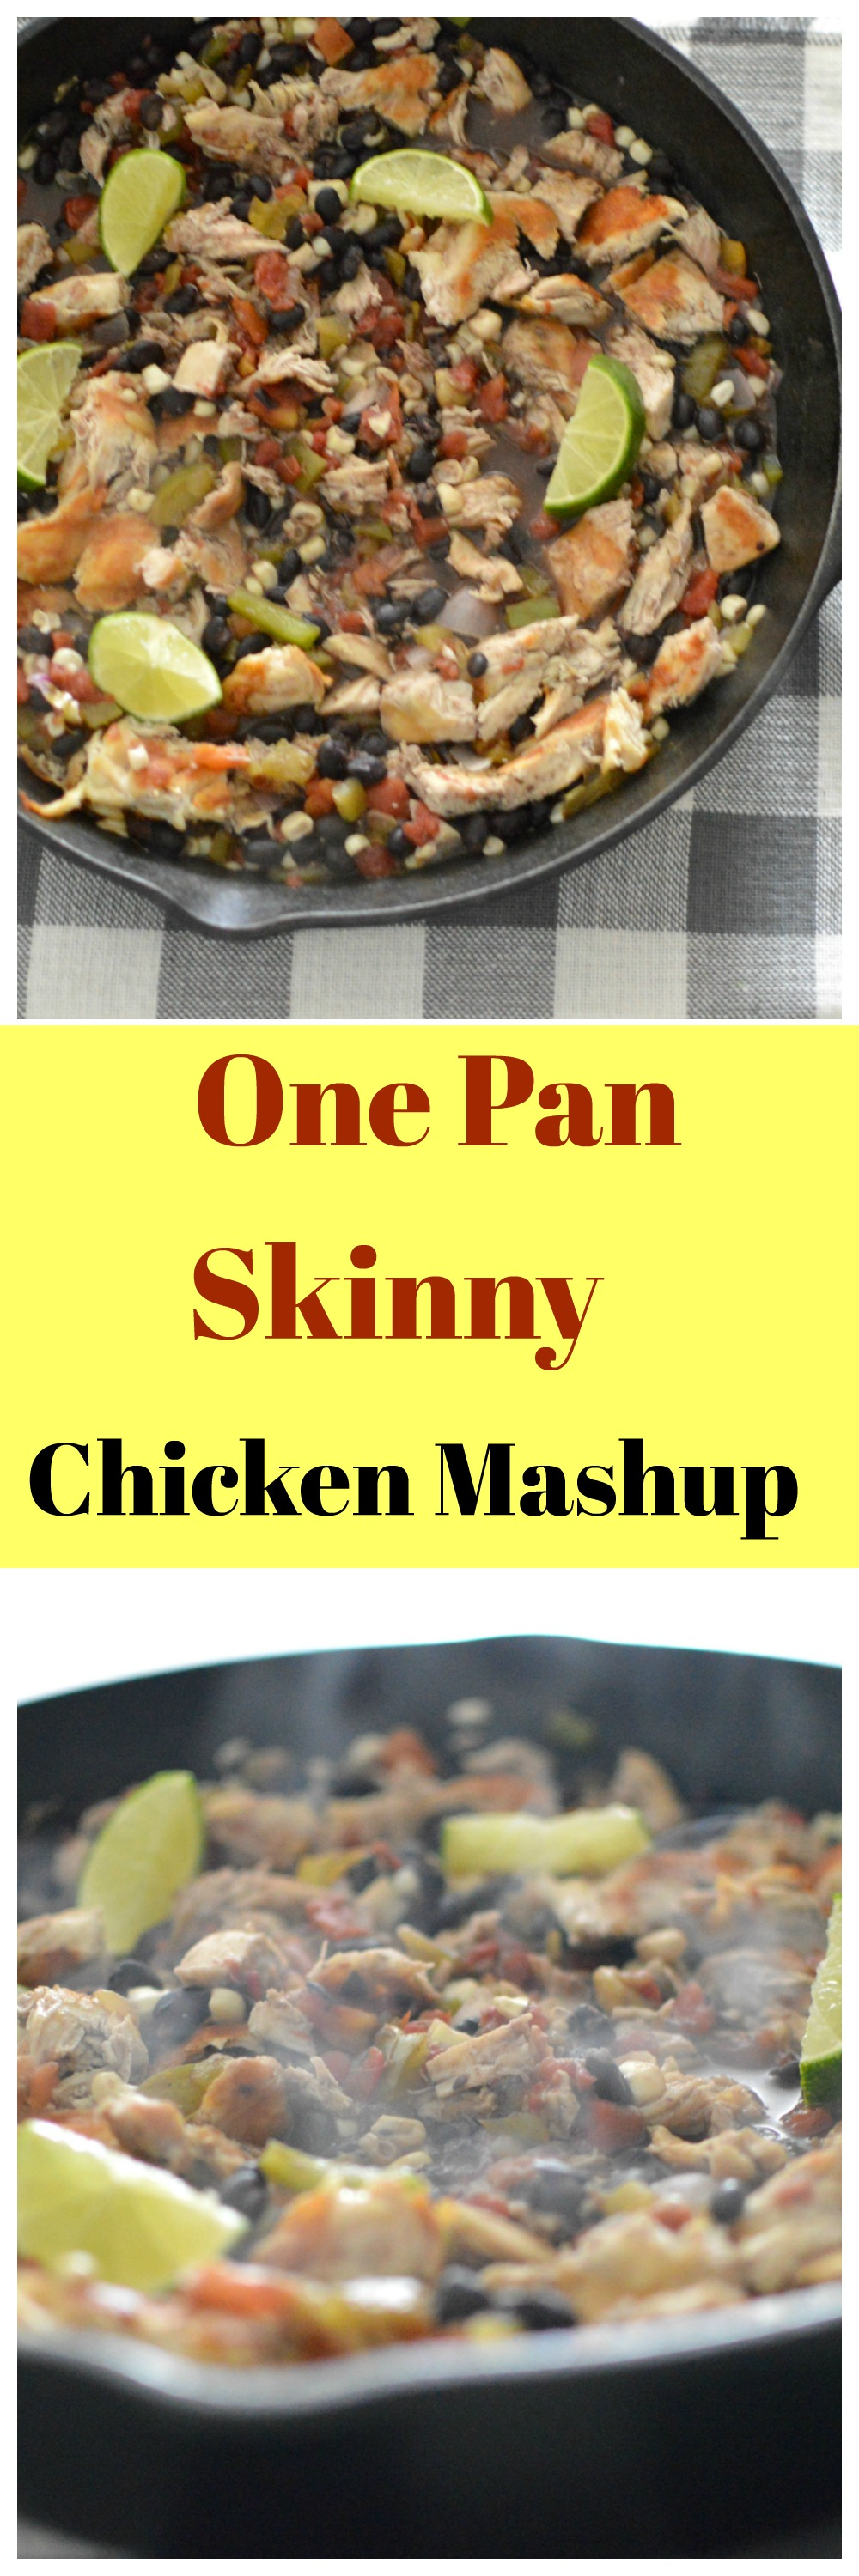 You are going to LOVE this One Pan Skinny Chicken Mashup 😍 which by the way is AMAZING! It is the perfect clean eating meal to add to your weekly meal plan.